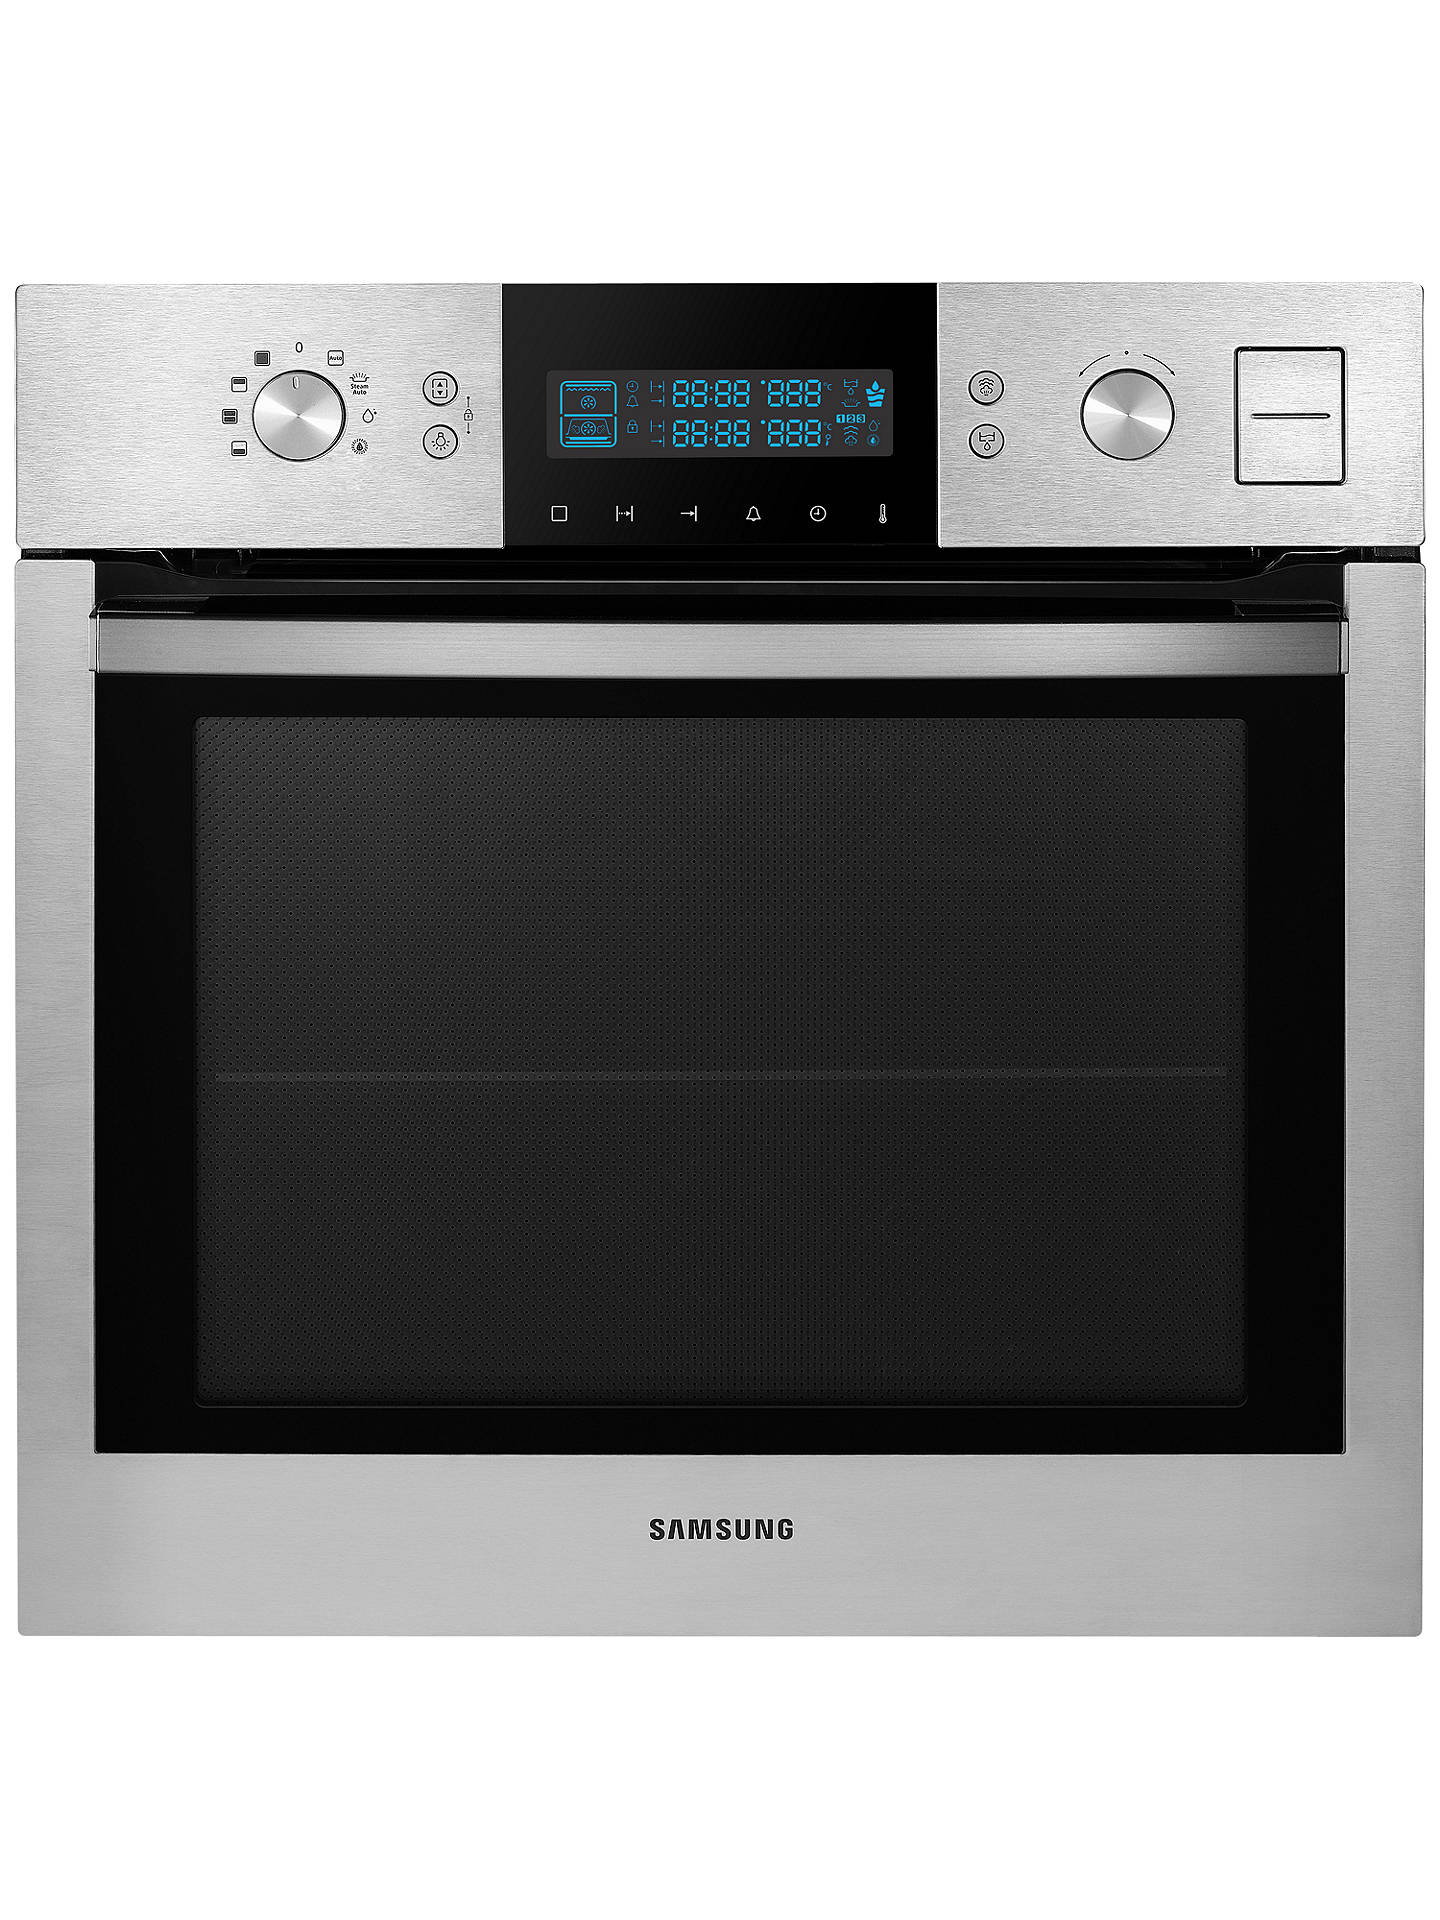 samsung bq1vd6t131 dual cook single electric steam oven stainless steel at john lewis partners. Black Bedroom Furniture Sets. Home Design Ideas